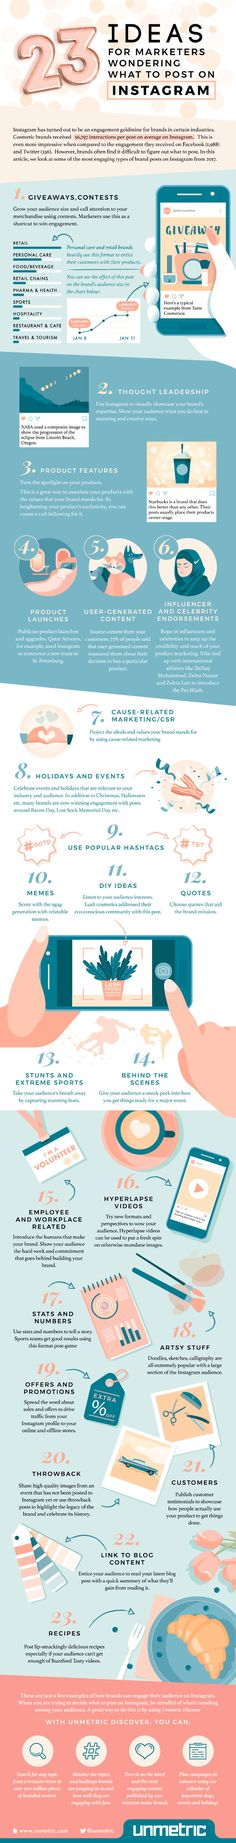 23 Ideas for Marketing Posts on Instagram   Infographic